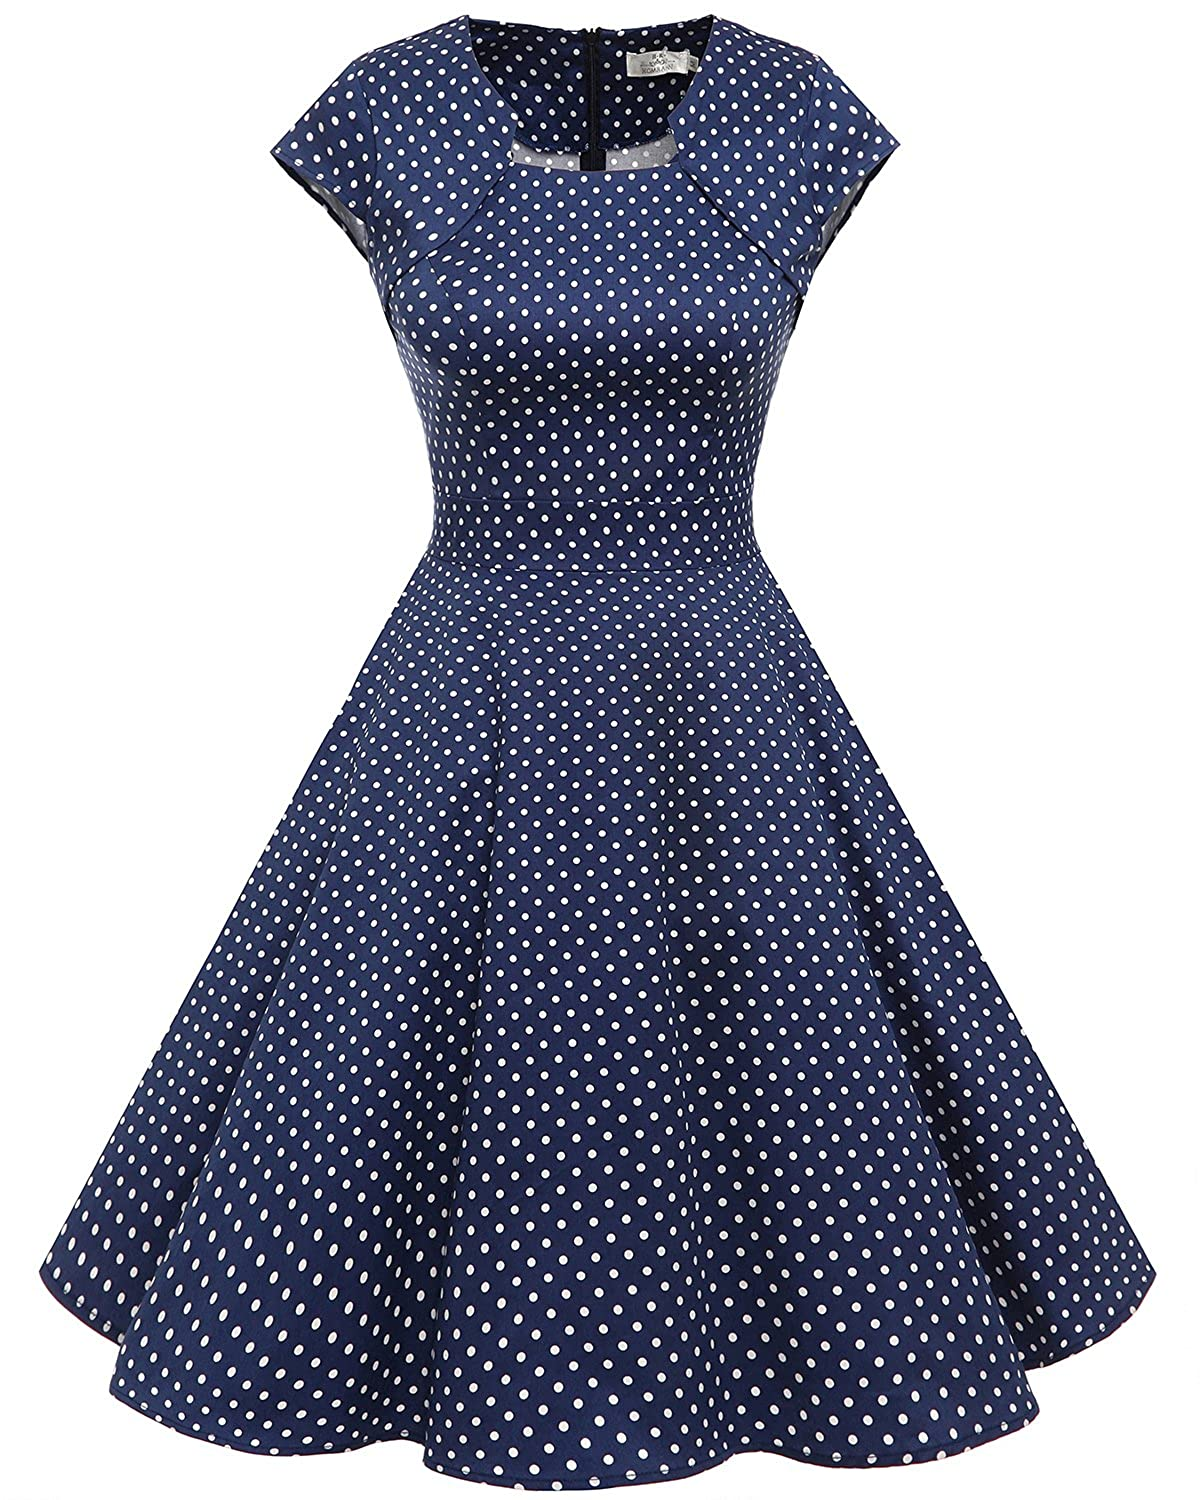 Homrain DRESS Dot レディース B077ZJLJNT White XL|Navy Small White Dot XL|Navy Navy Small White Dot XL, ファストゴルフ:9e81b521 --- nutrispace.dominiotemporario.com